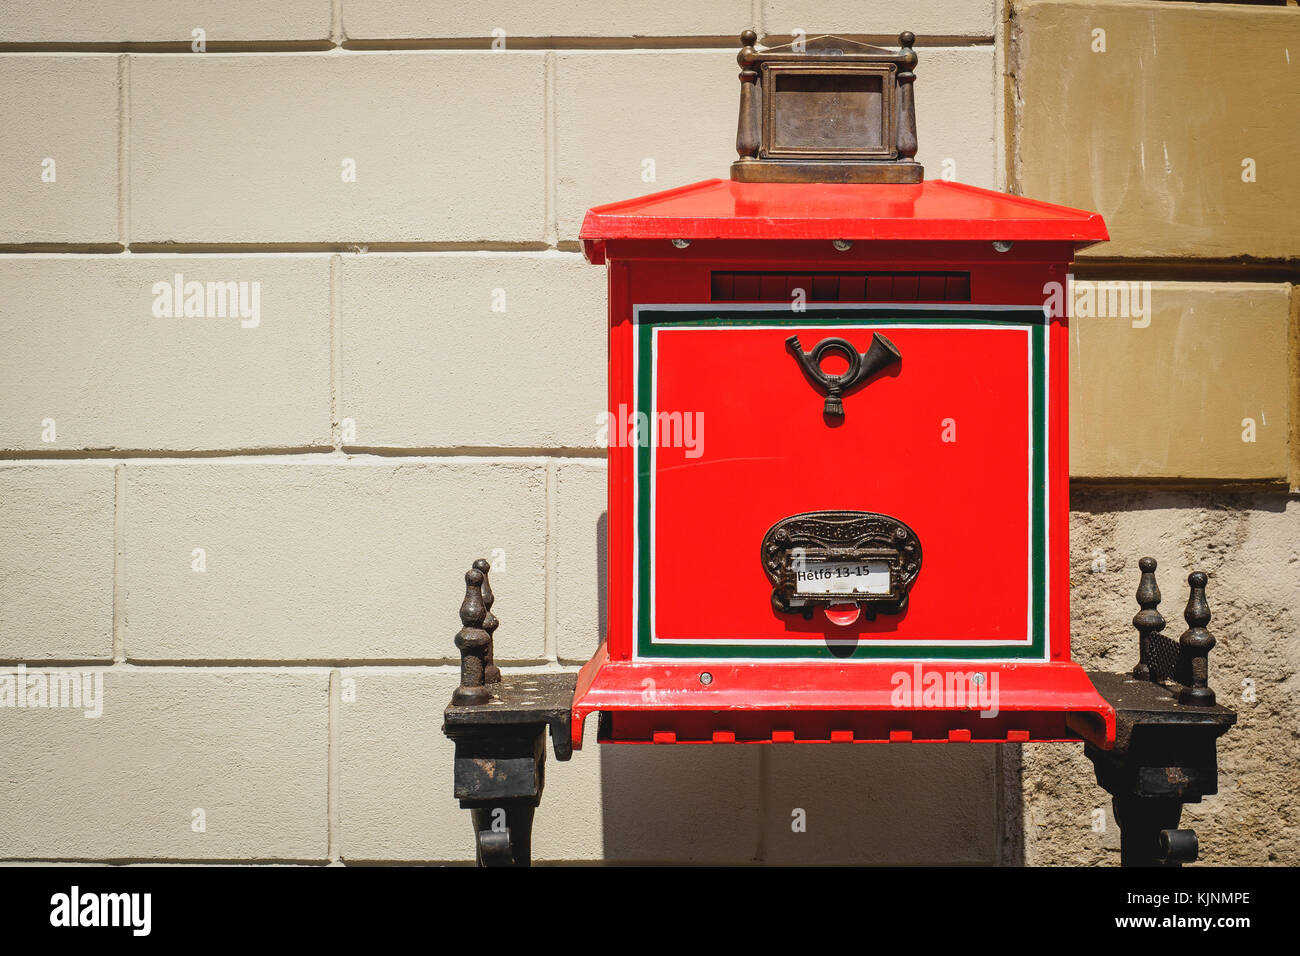 Traditional Hungarian letterbox in Budapest (Hungary). June 2017. Landscape format. Stock Photo